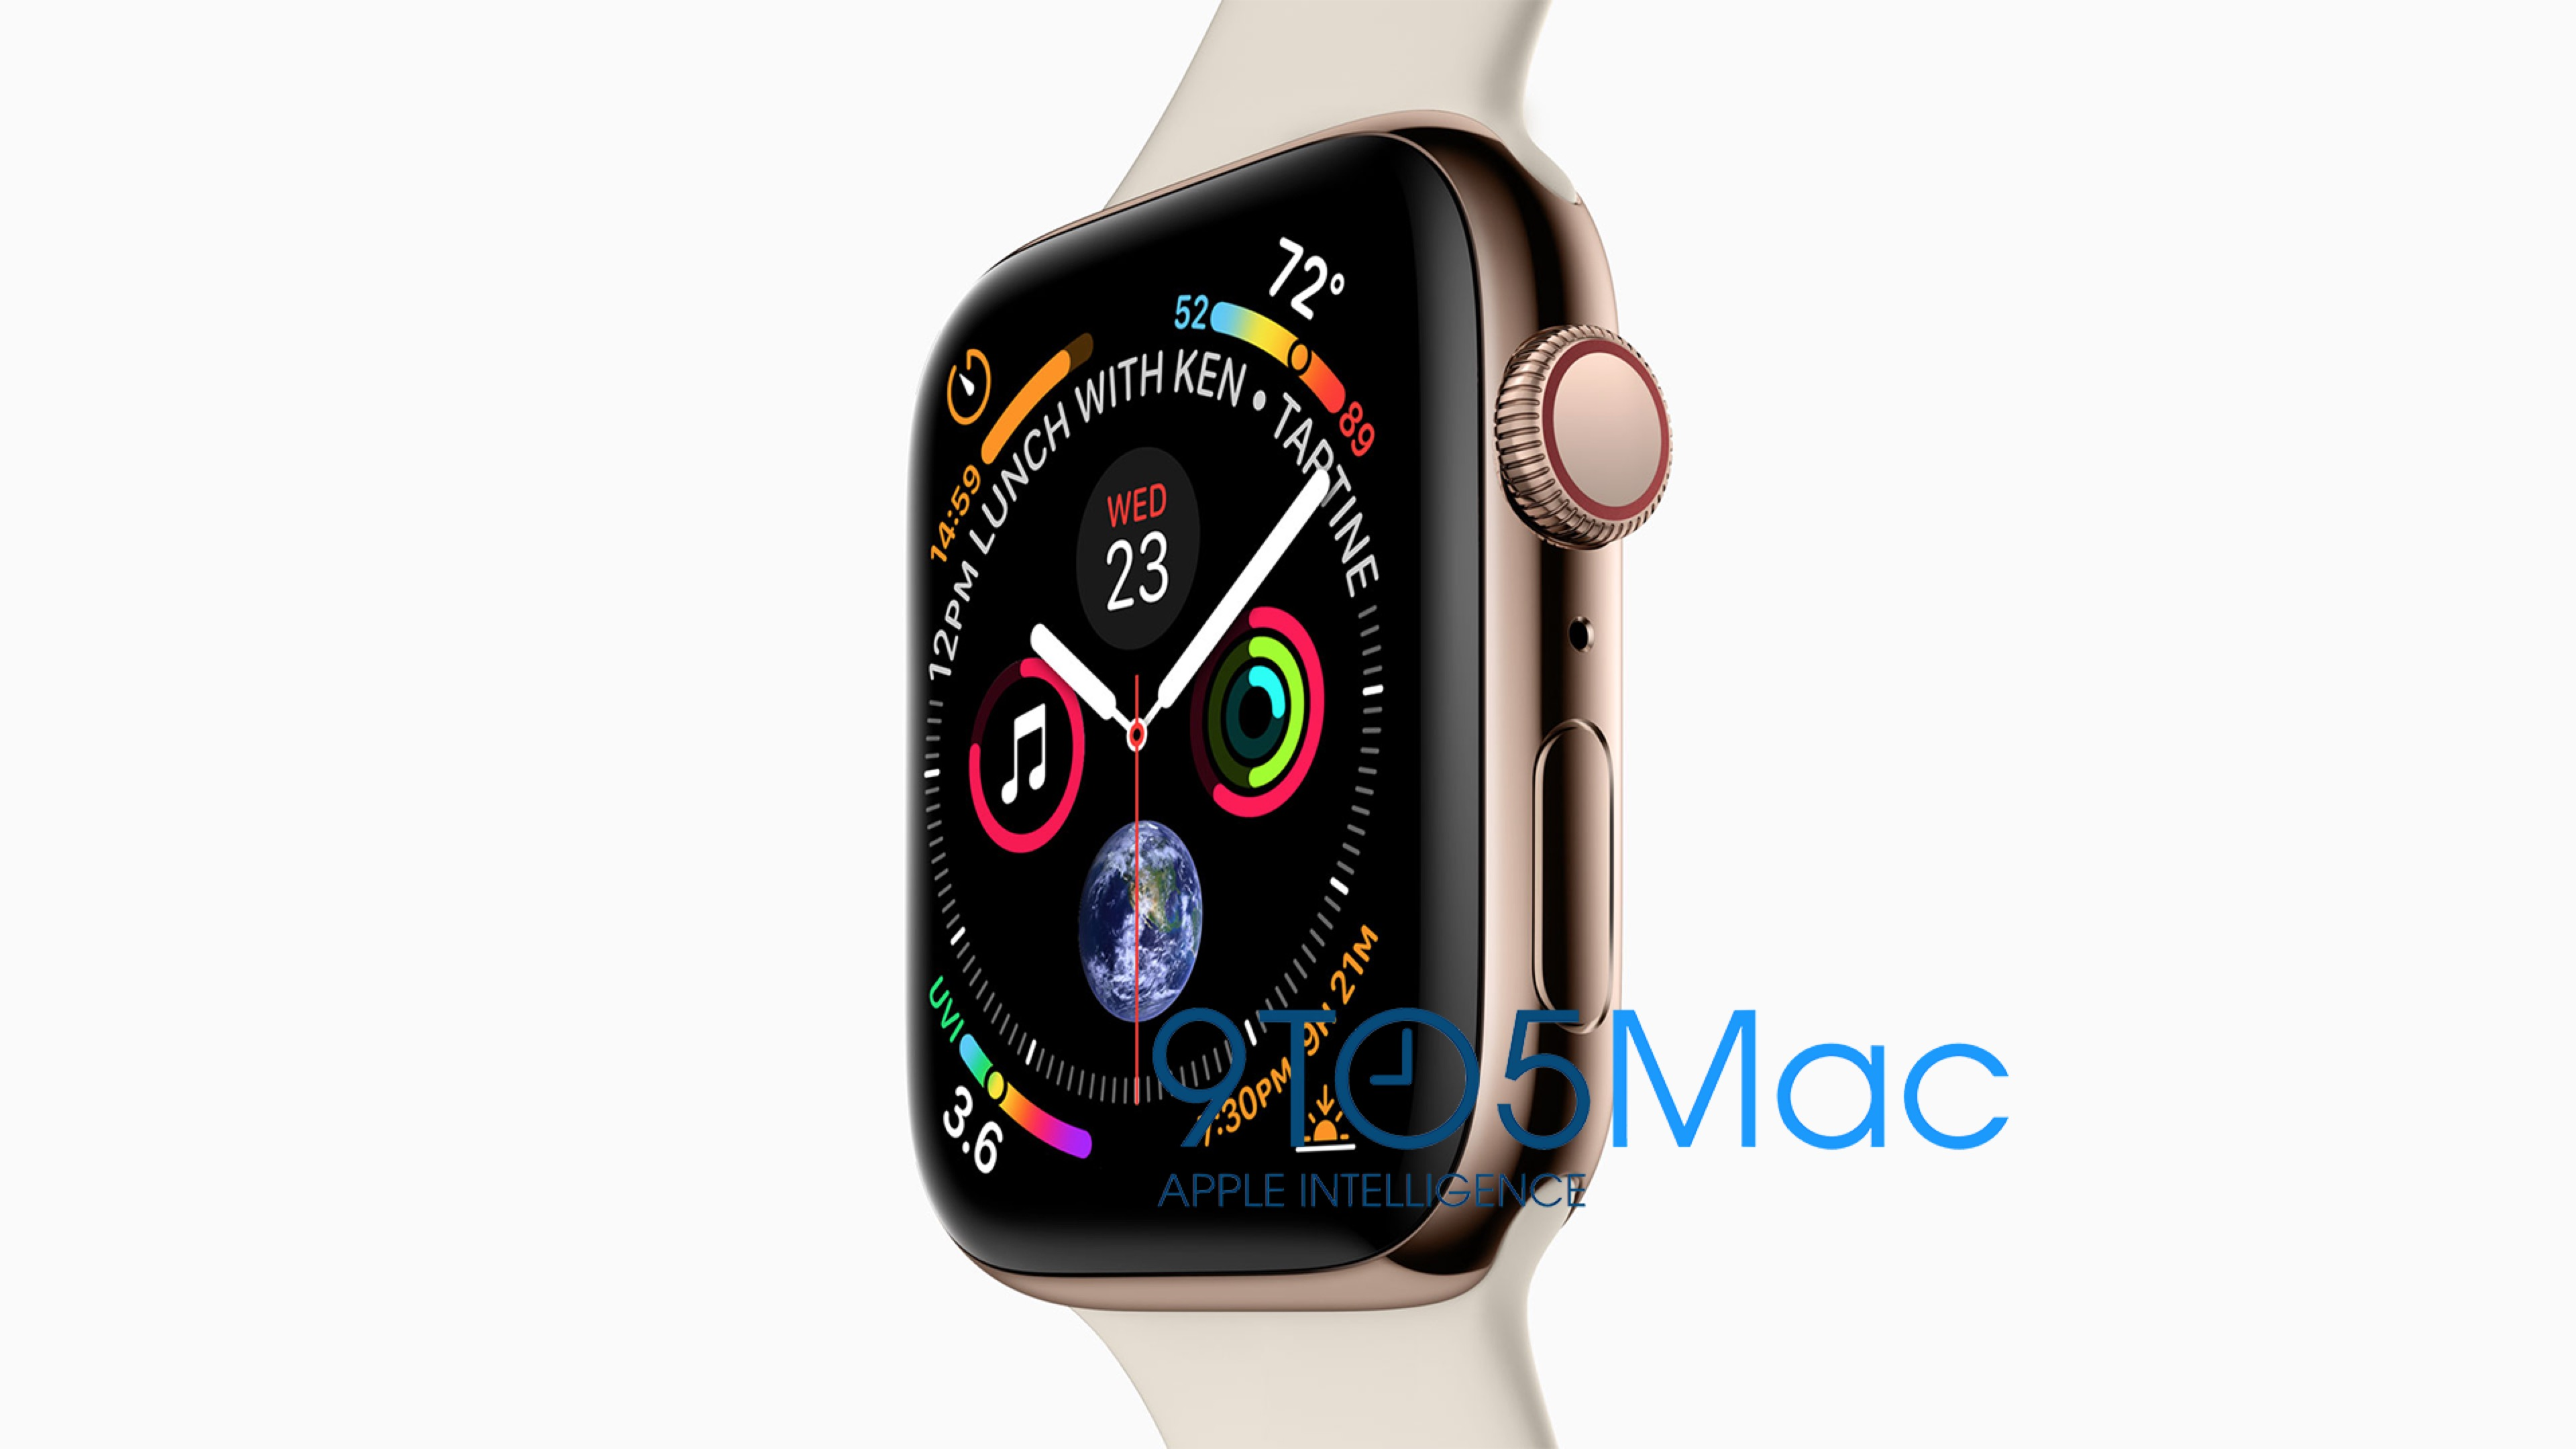 Exclusive Apple Watch Series 4 Revealed Massive Display Dense Watch Face More 9to5mac